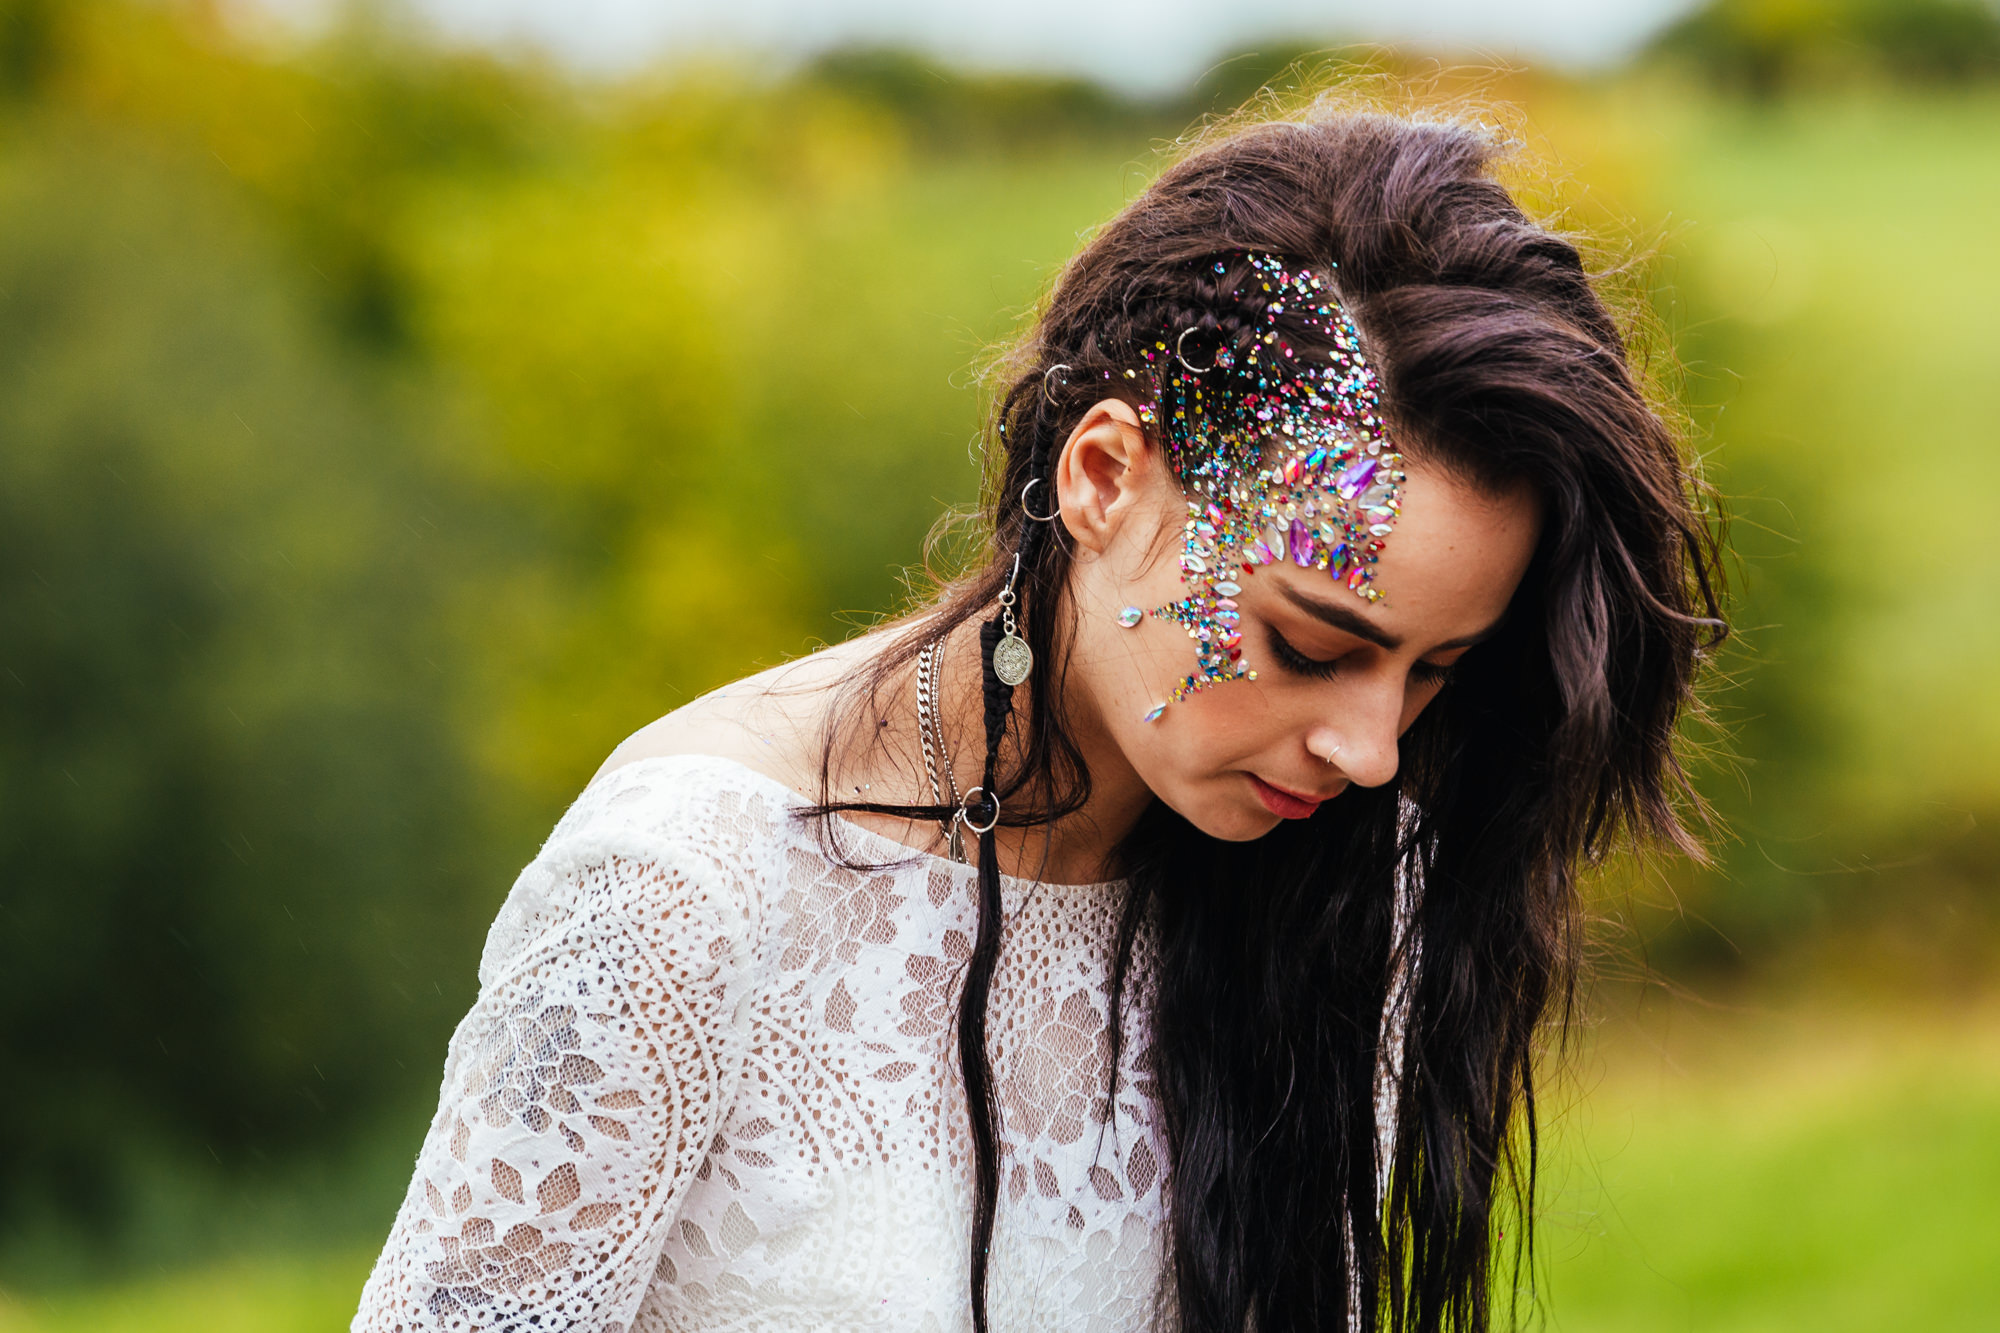 Being yourself on your wedding day - Bride wearing boho dress and glitter on her face at her outdoor wedding